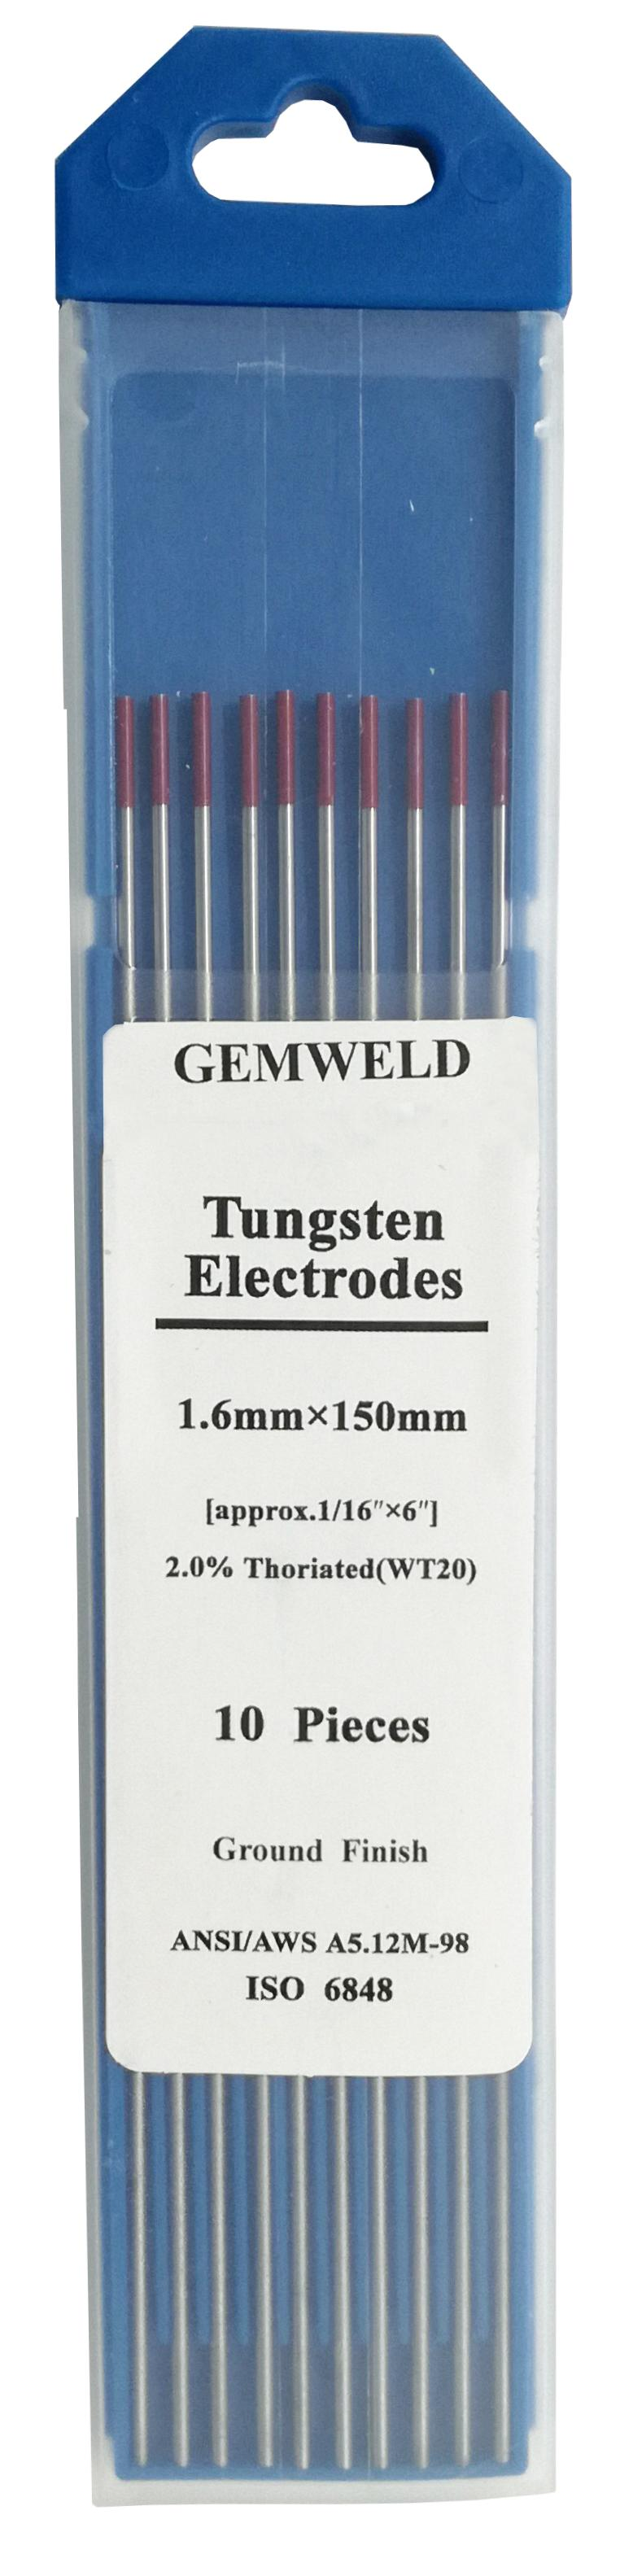 2 boxes/set Tungsten Electrodes φ 1.6*150mm 10 pieces